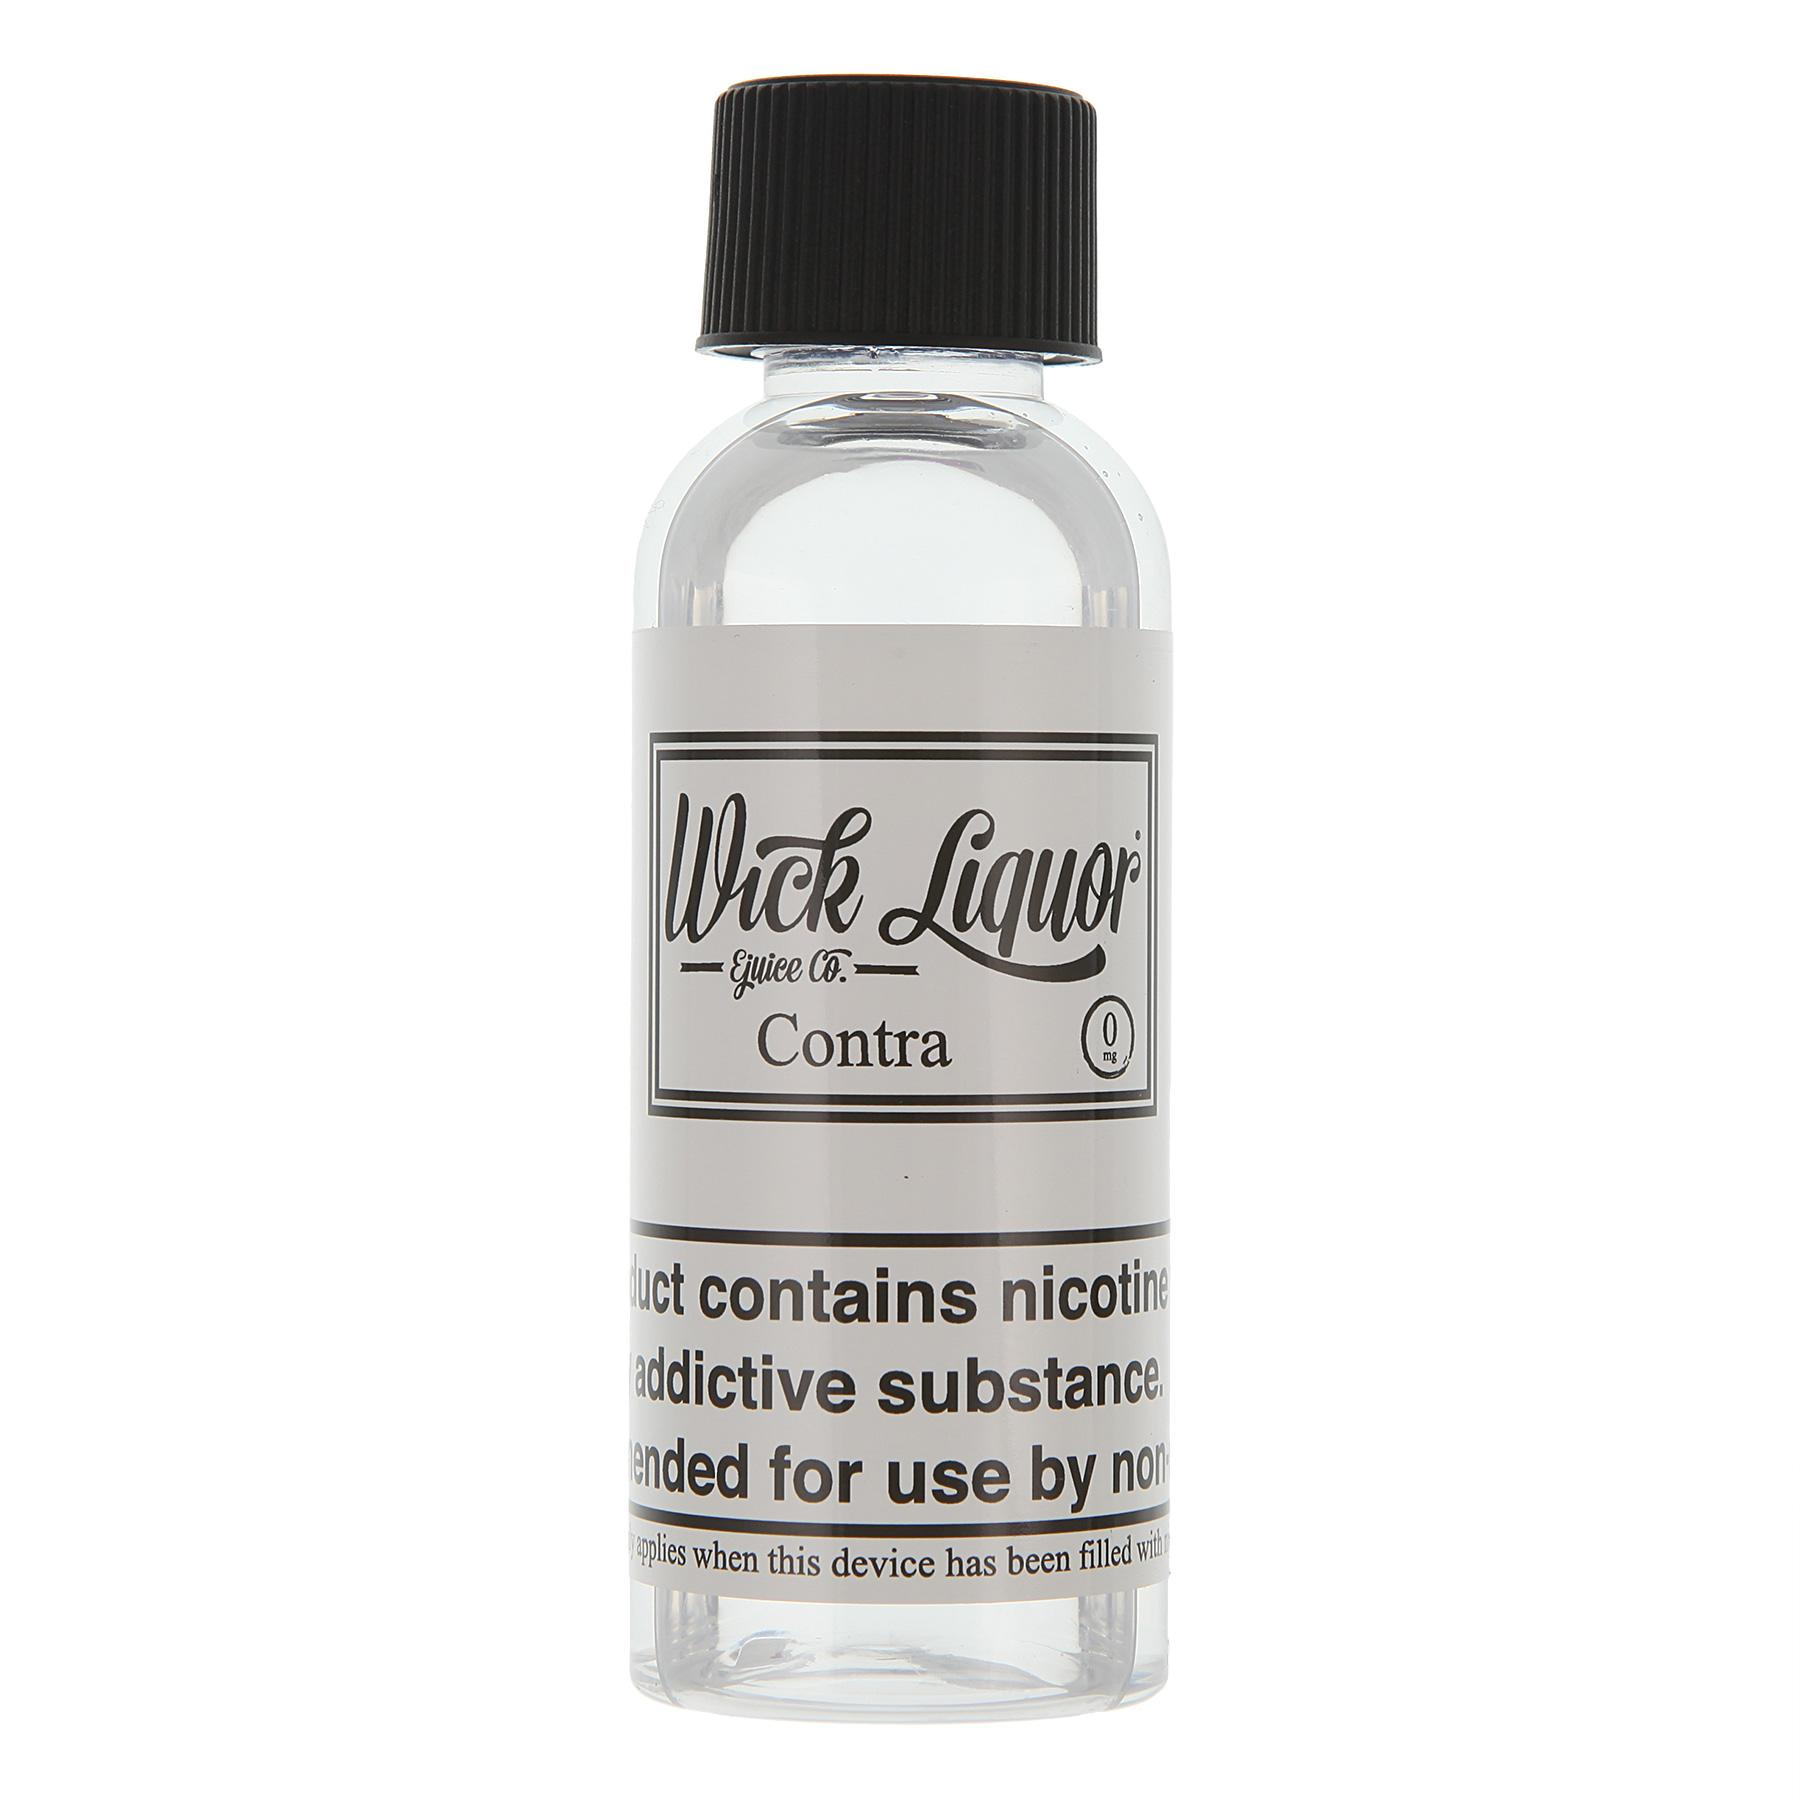 50 mlCONTRA E LIQUID E JUICE BY WICK LIQUOR IN IRELAND